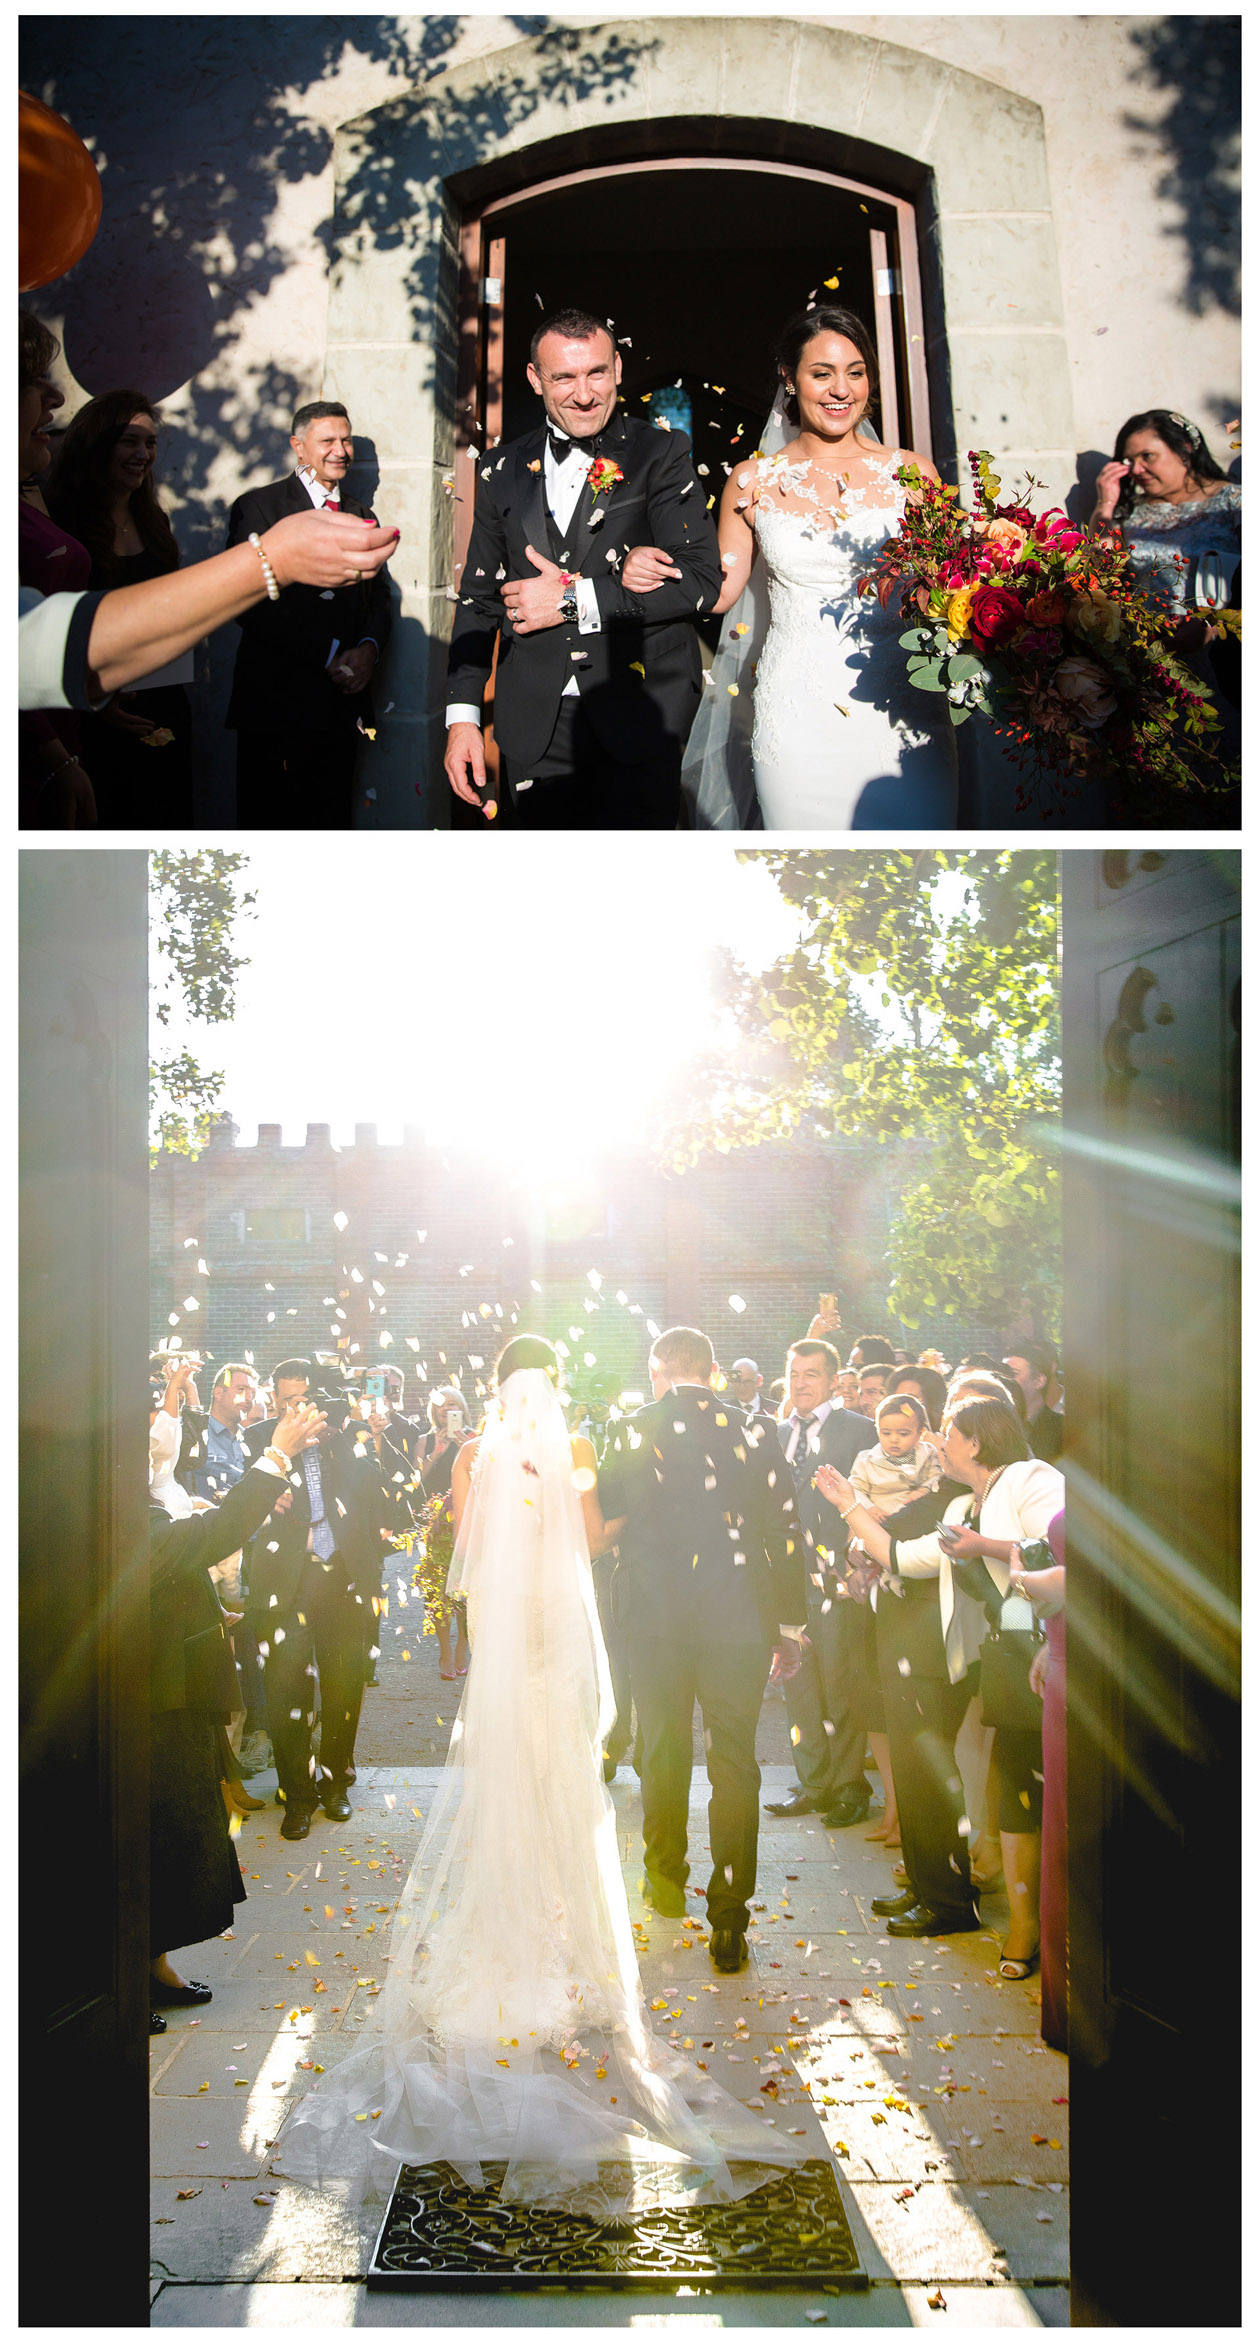 The Macedonian girl with a white veil and her Macedonian groom took a beautiful wedding photo in Stones of the Yarra Valley in the golden autumn